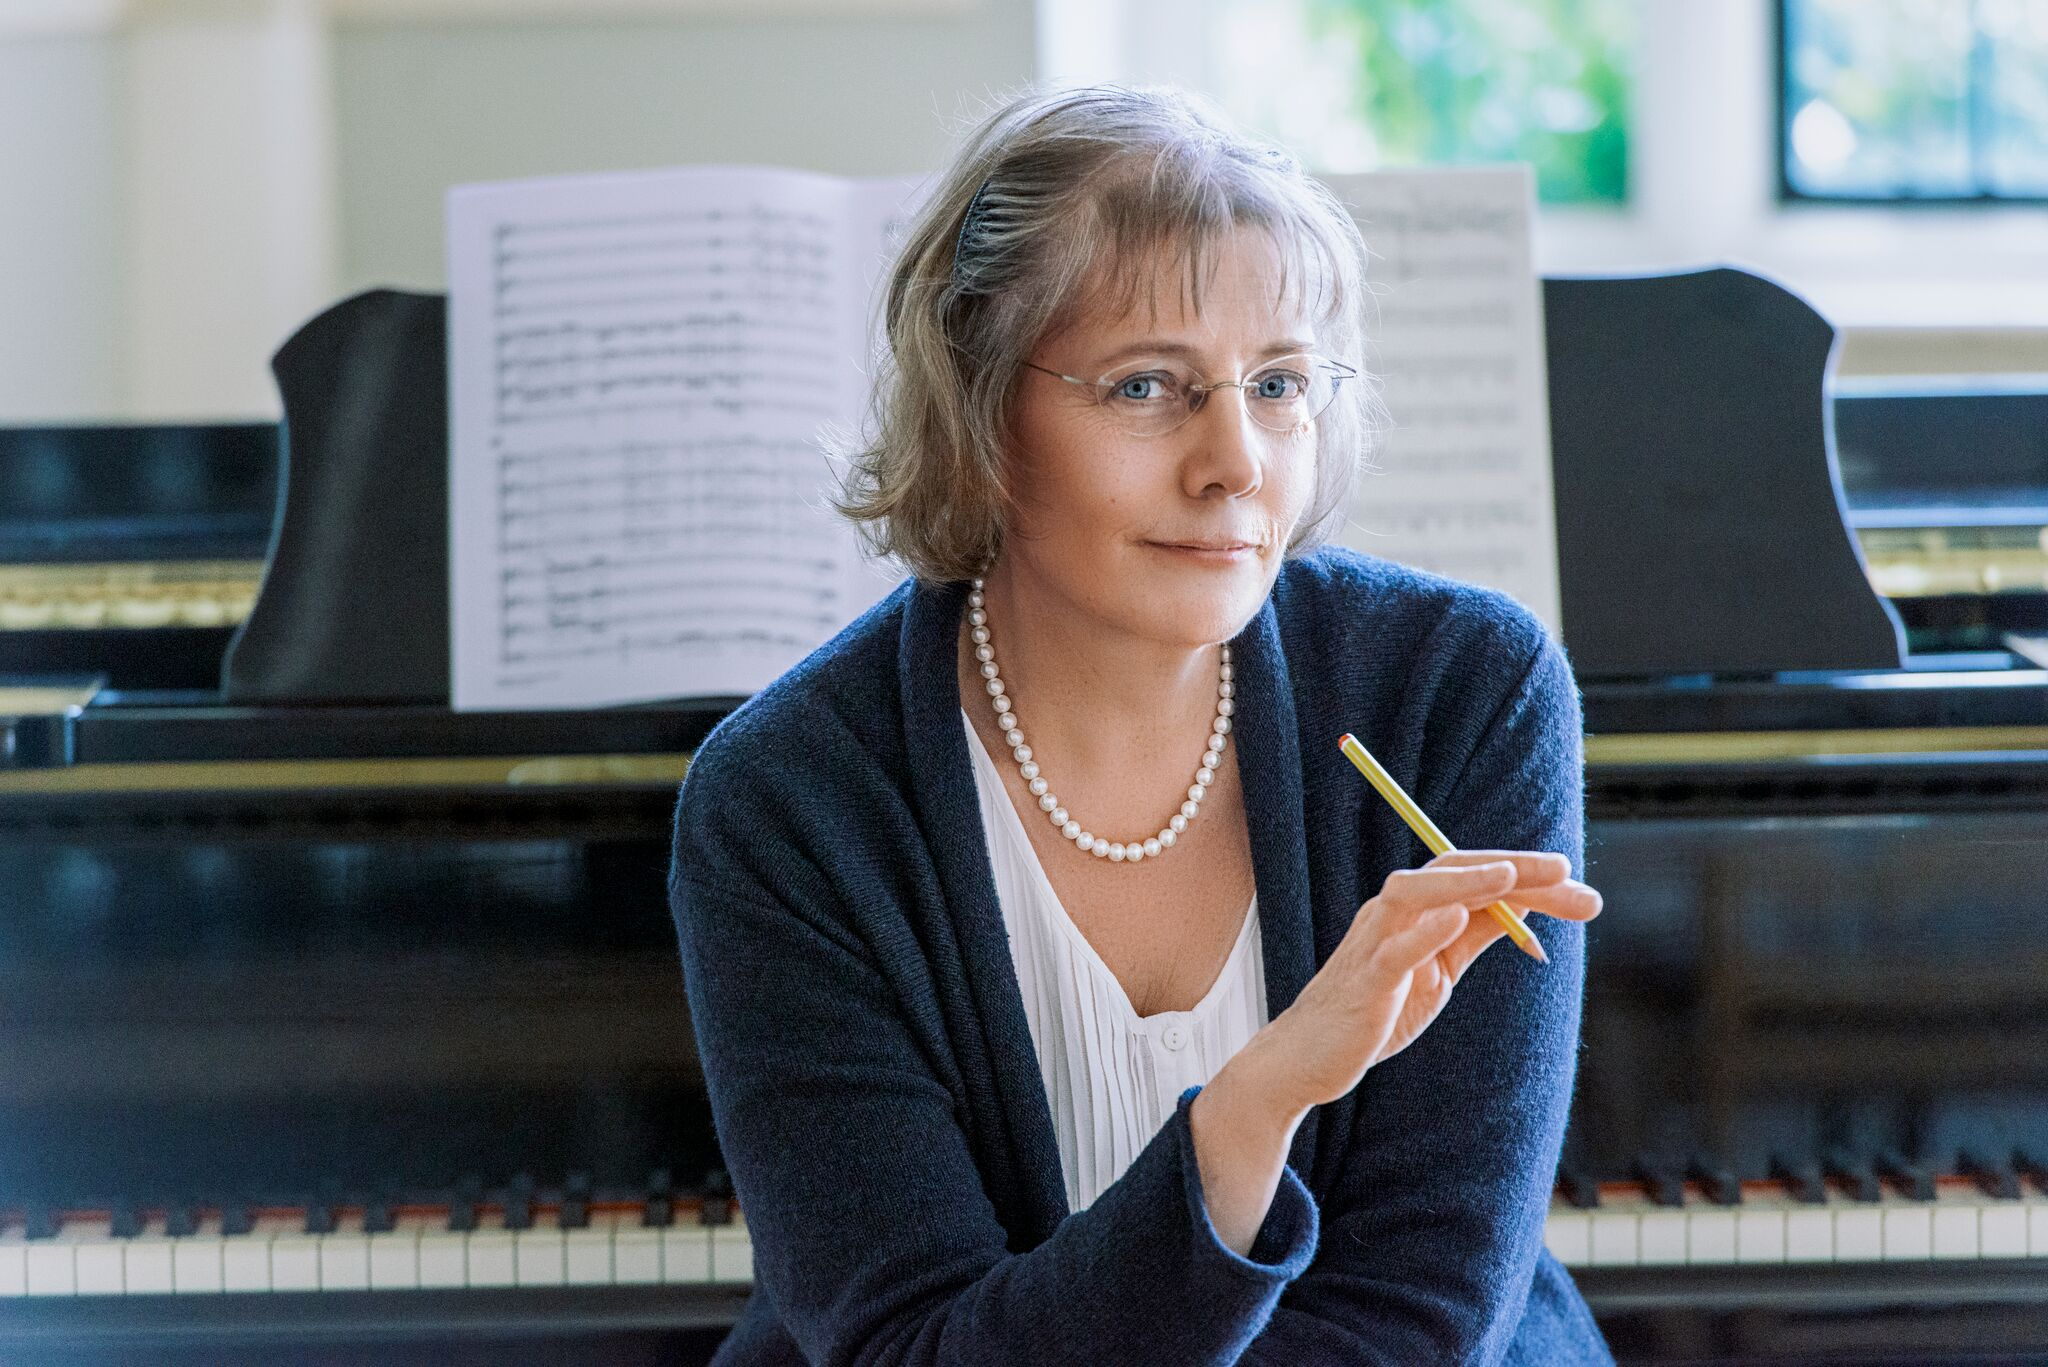 Janet Wheeler - Composer and conductor Janet Wheeler works with choirs in Saffron Walden and Cambridge. She read music at Cambridge, studying composition with Robin Holloway, before a career in secondary music followed by eight years as music producer for BBC Schools Radio. Now a busy choral conductor whose choirs include Granta Chorale and Saffron Walden Choral Society, she is also much in demand as a choral composer, writing music from small a capella pieces to choral/orchestral works, all informed by her strong response to the rhythms and meanings of texts.Her larger works include Sea Tongue (2004), Magnificat Cum Angelis (2012), The Ceaseless Round of Circling Planets, commissioned for the 2016 Thaxted Festival, and I Sing and Ever Shall from the same year, commissioned by Southampton Philharmonic Choir. Wheeler conducts the second performance of this in March in Saffron Hall. Commissions from 2017 included Songs and Visions of Joy for Psallite Women's Choir, And Then We Knew Peace and A Poison Tree for Farnham Youth Choir, and a commemorative choral cycle Gather the Good Days, commissioned as a companion piece to her earlier cycle Time Becomes a Song.Choirs performing Wheeler's music include Gloucester Cathedral Choir and I Fagiolini (both in broadcasts on Radio 3), the National Youth Choirs of Great Britain, National Youth Choir of Wales, University of London Chamber Choir, Imperial College Choir, Chandos Chamber Choir and many more.Her recent competition successes include the Friends of Cathedral Music Diamond Jubilee Introit Competition in 2016 and the Hendrix Carol Competition 2017. She is currently working on music for NYCGB with percussionists O Duo.